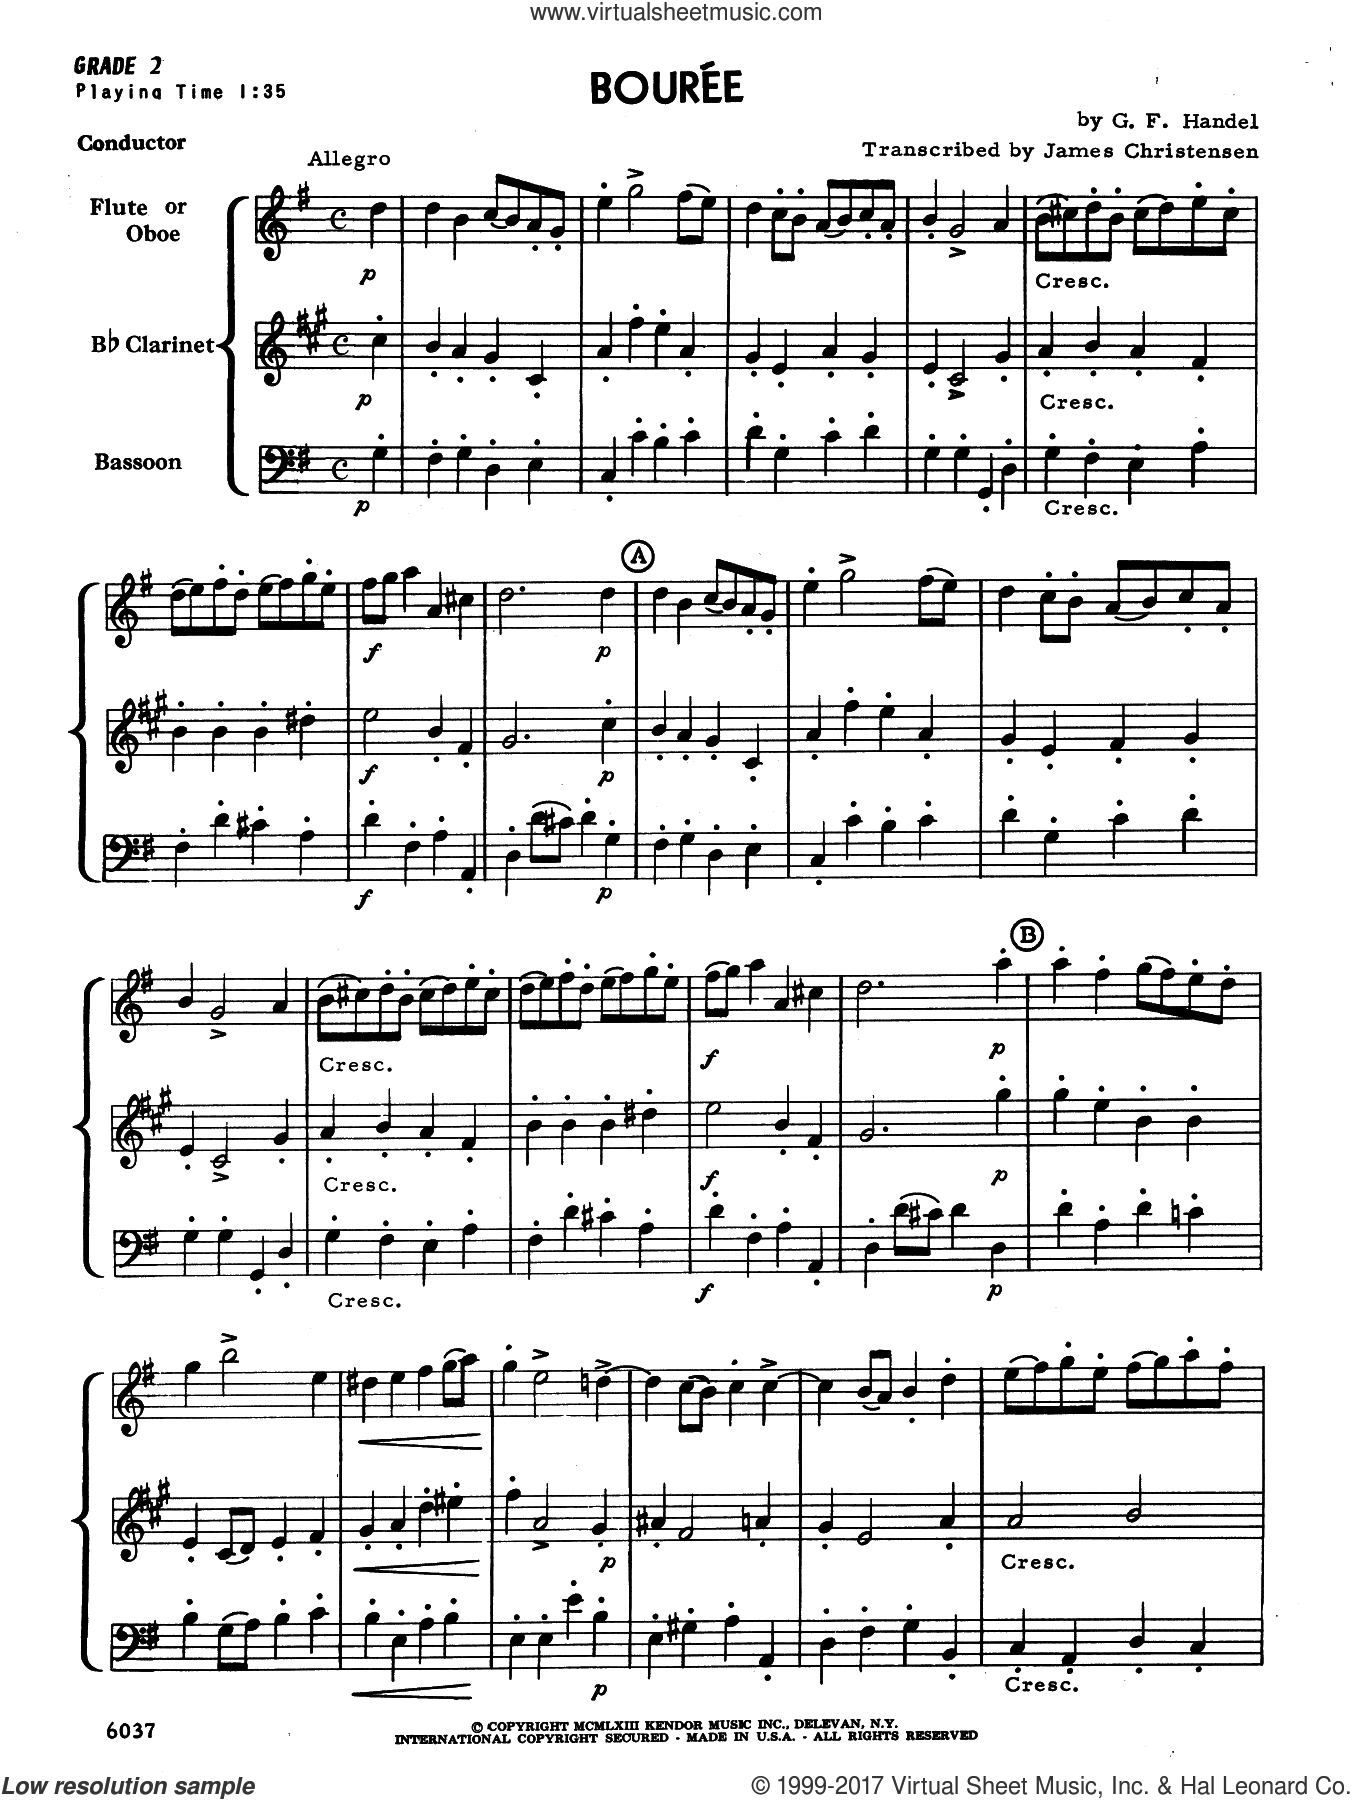 Bouree (COMPLETE) sheet music for wind trio by George Frideric Handel and James Christensen, classical score, intermediate skill level